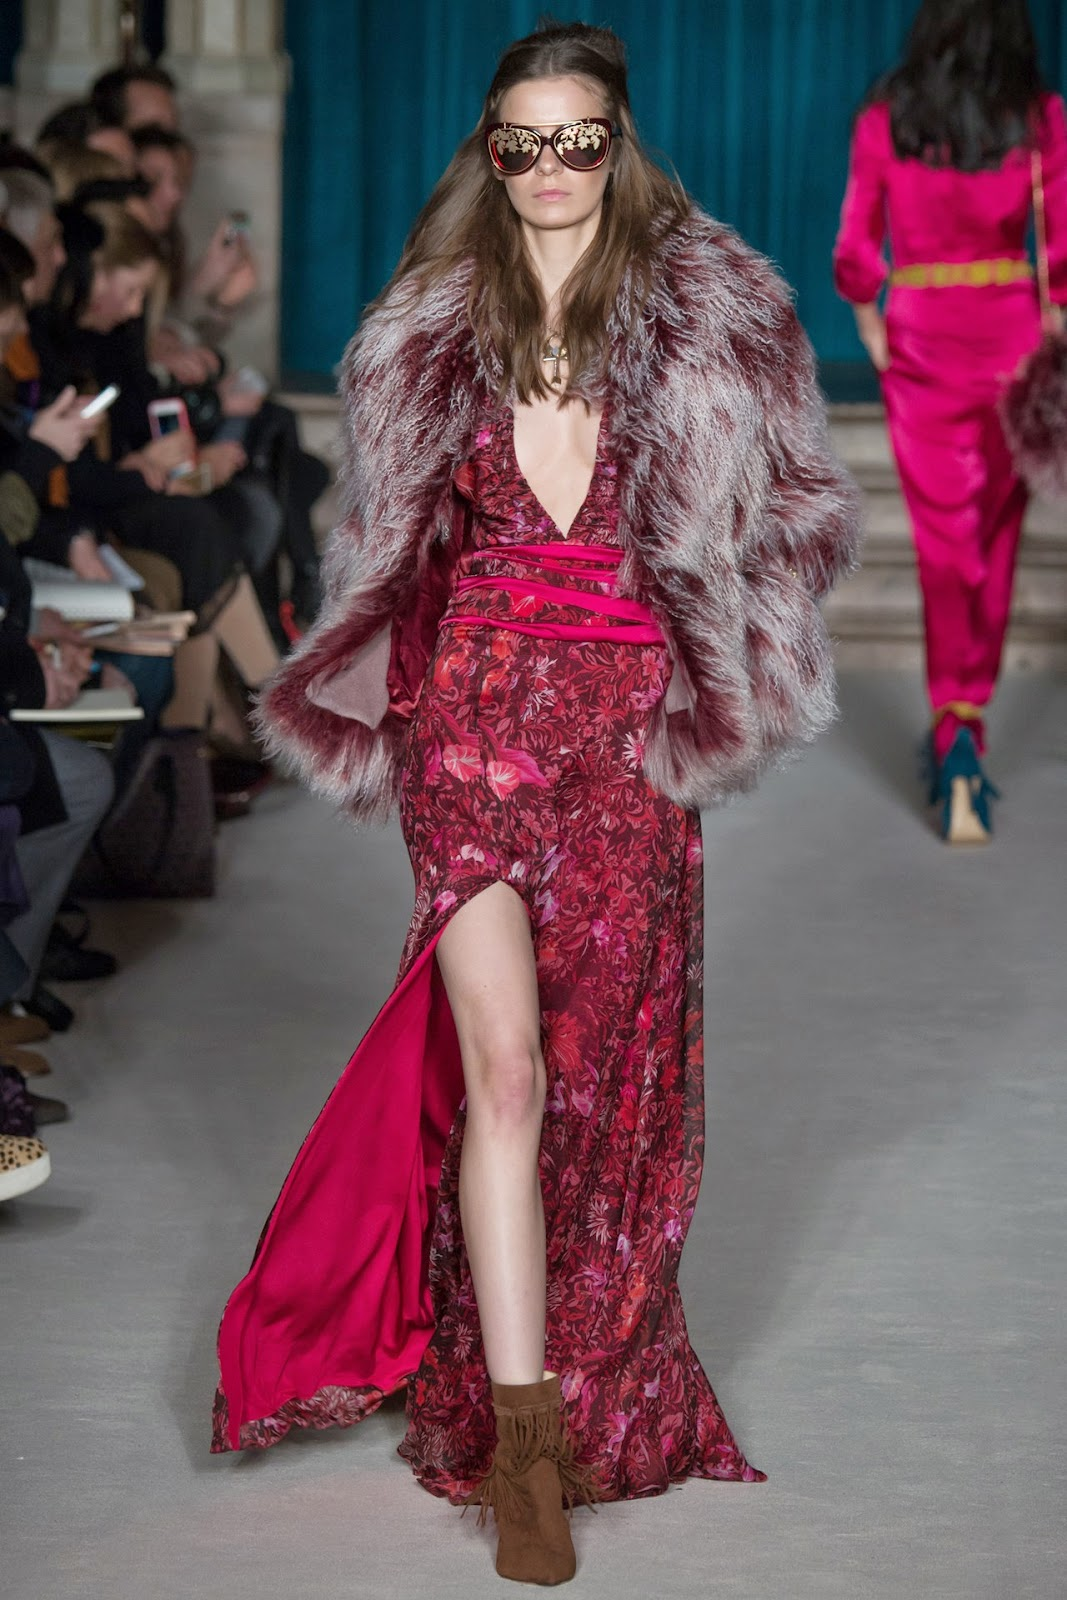 Matthew Williamson AW 2015